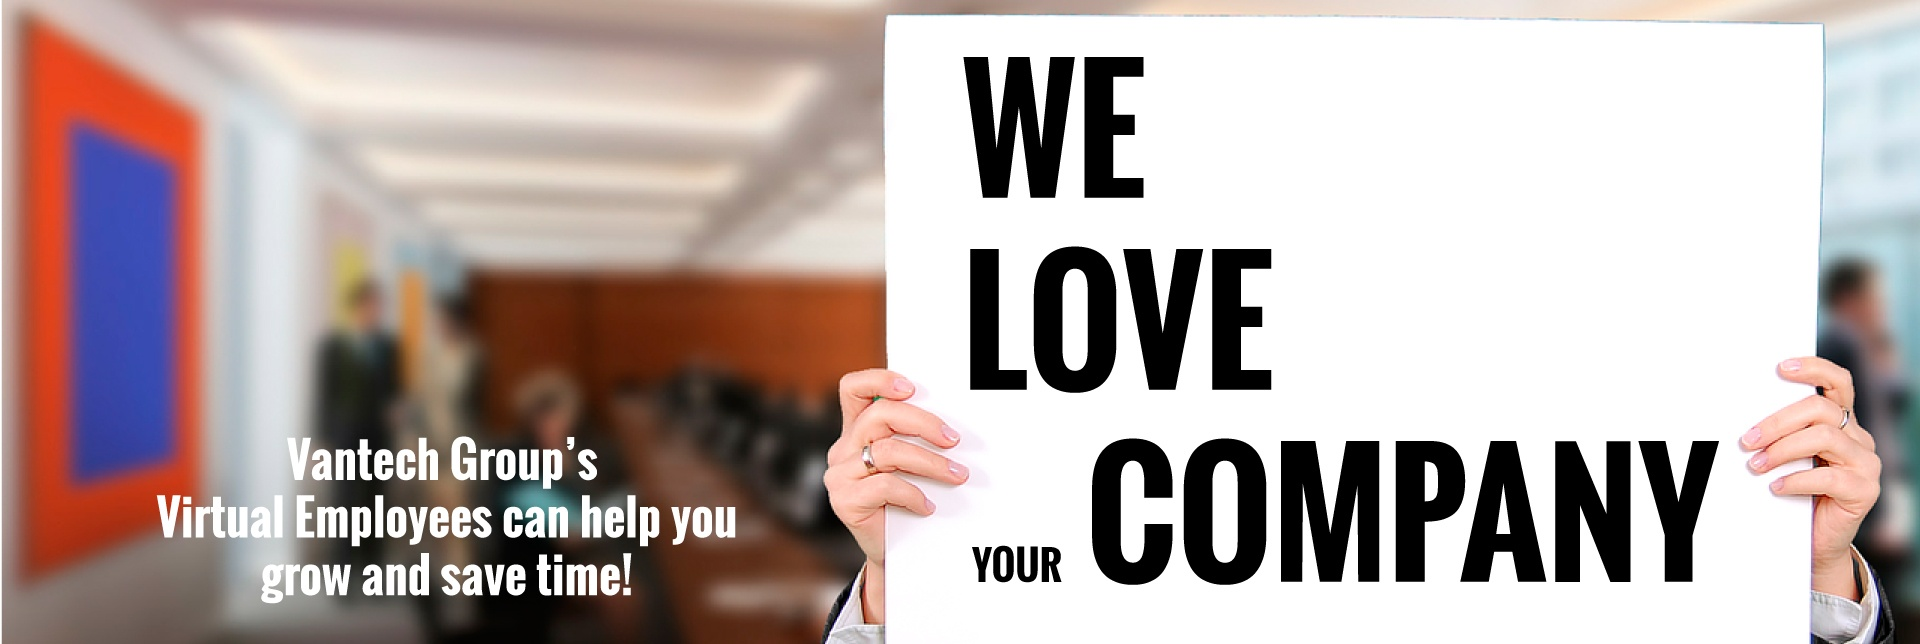 banner-we-love-your-company.jpg